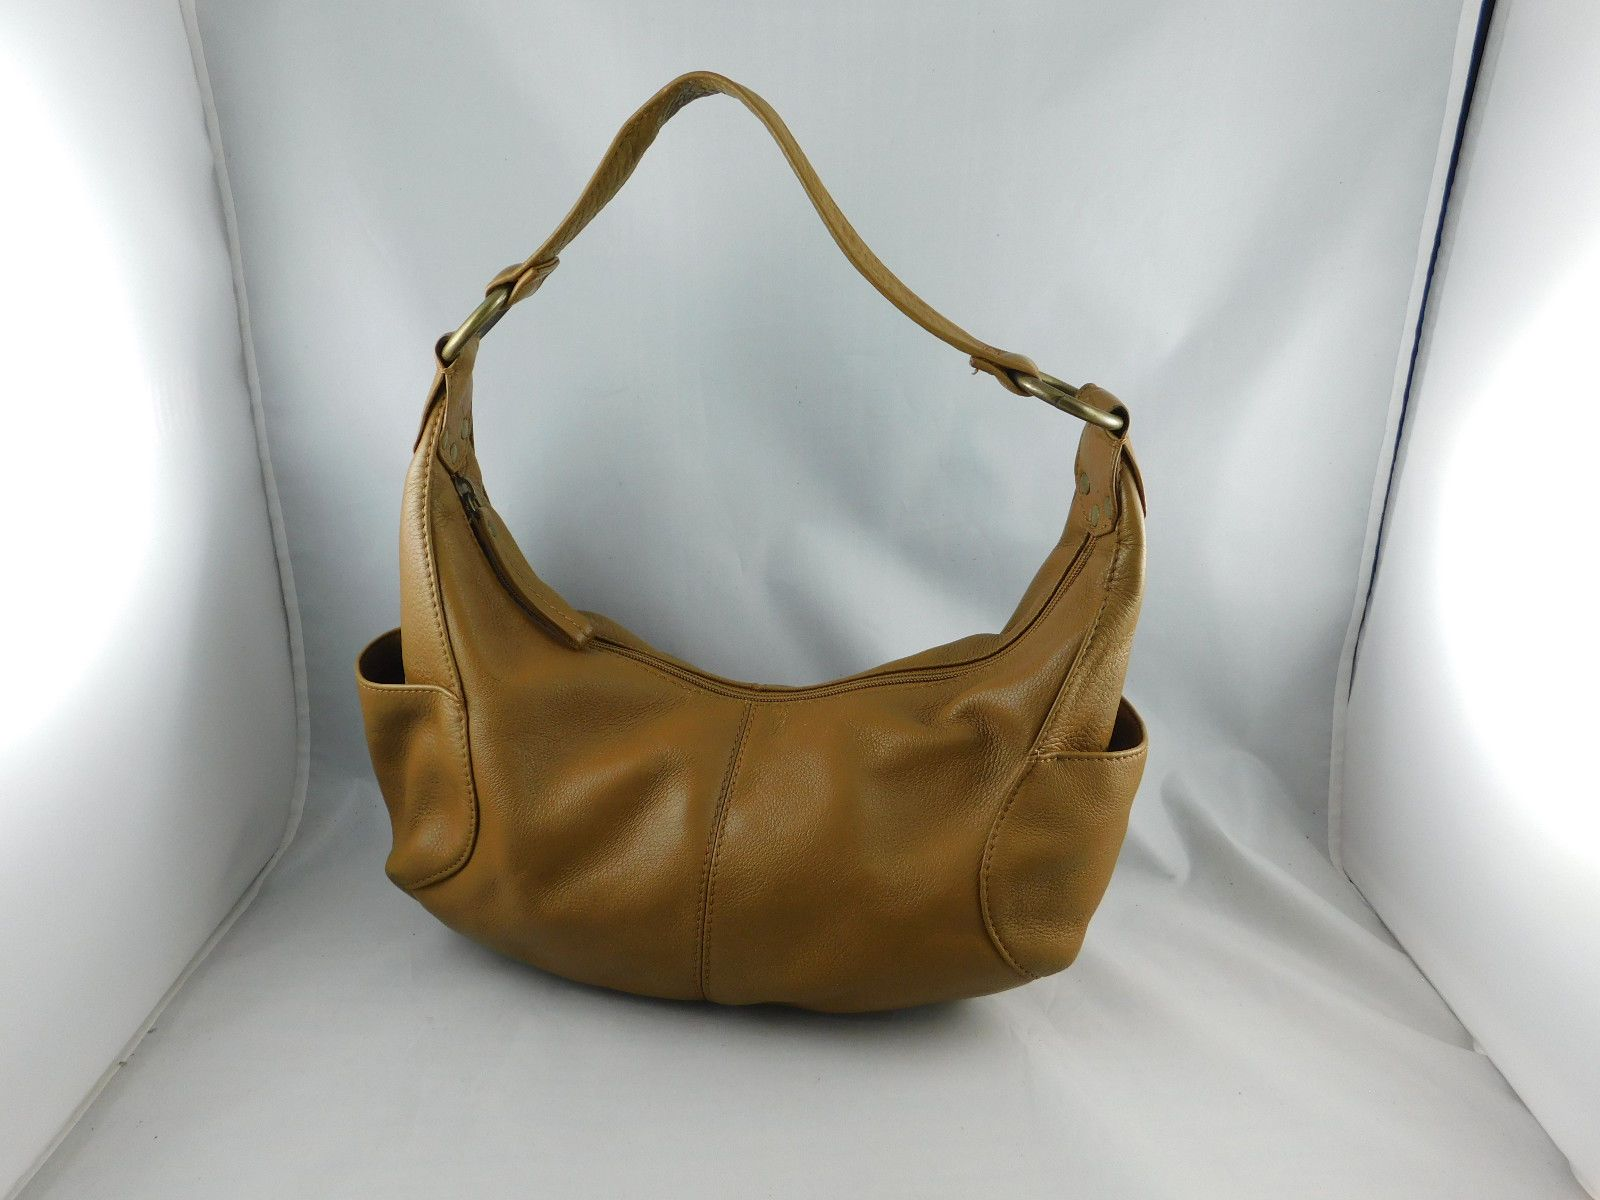 Hobo International Brown Leather Handbag Shoulder Bag Side